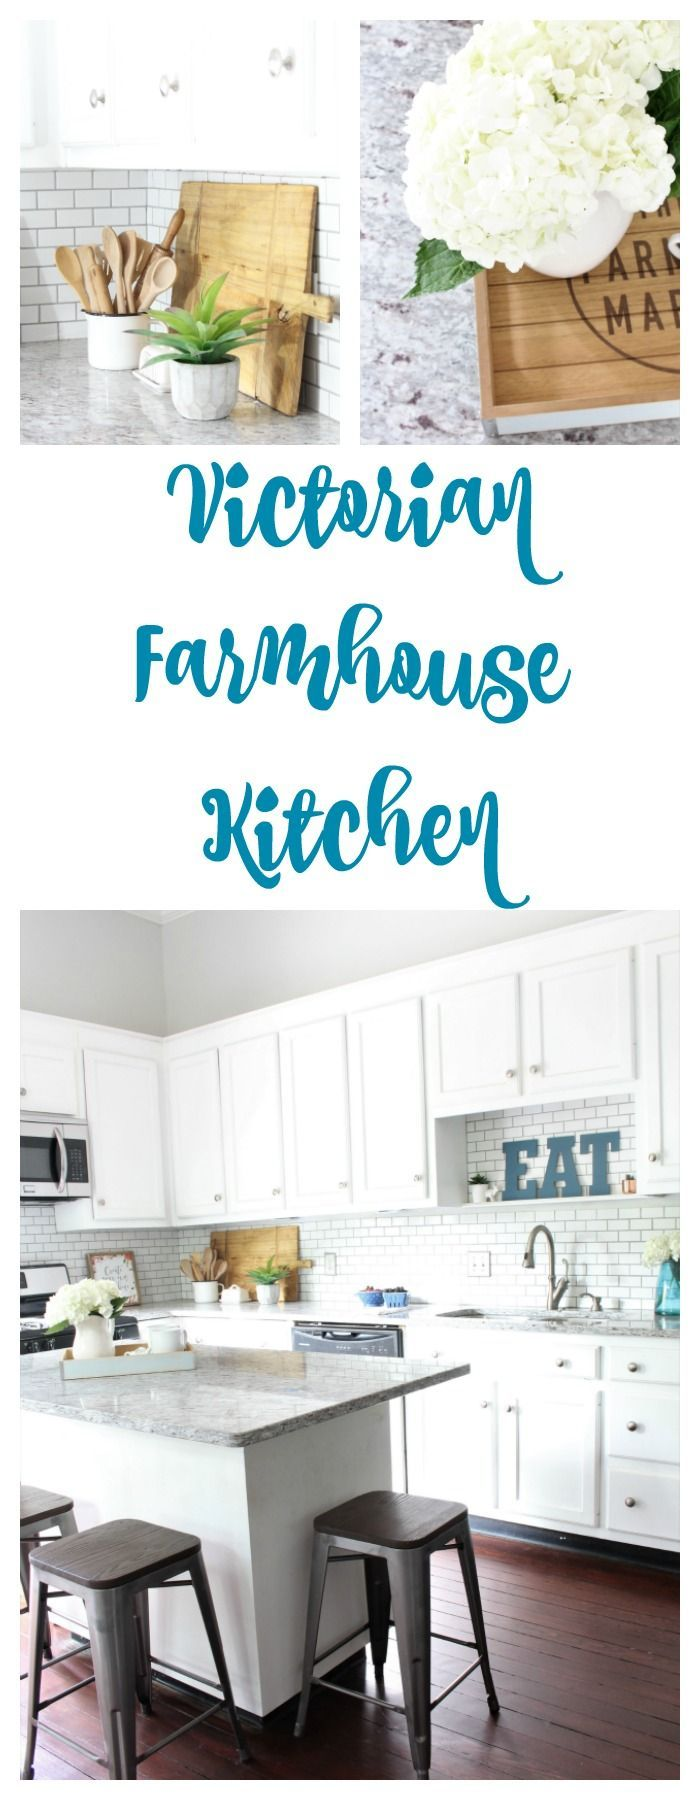 Victorian Farmhouse Kitchen   Room by Room Summer Series. 1615 best Finding Decorating Ideas and Inspiration images on